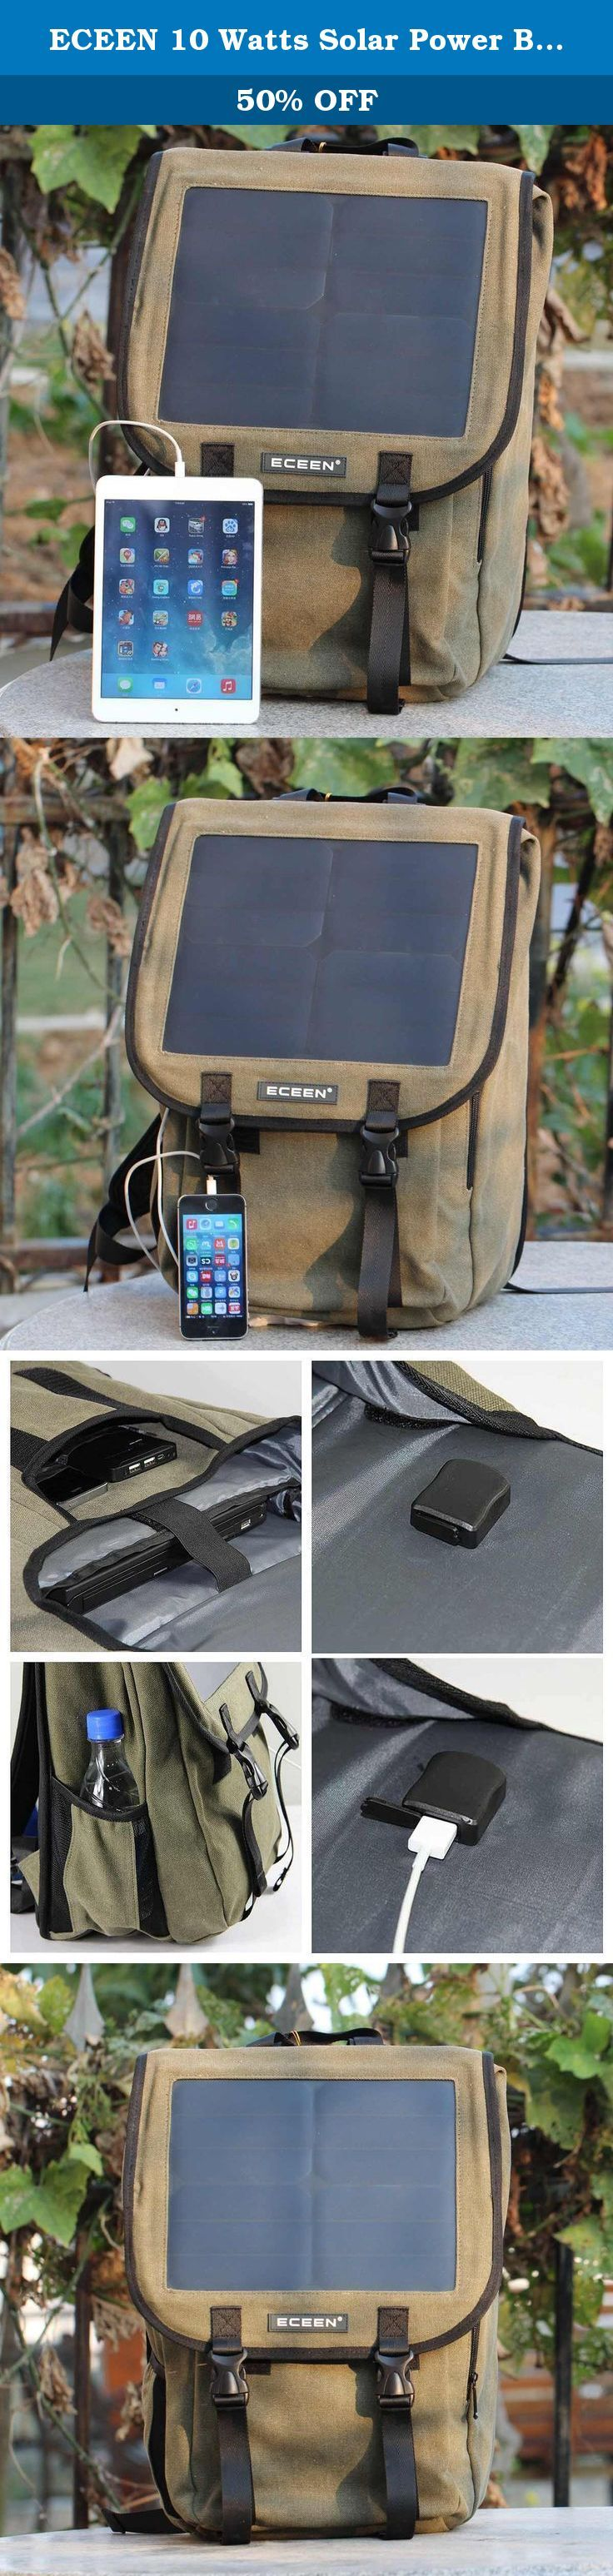 ECEEN 10 Watts Solar Power Backpack, 38 Litres and Canvas Material Bag, Solar Power Charger with Voltage Regualte Charging For iPhone, iPad, SAMSUNG, Gopro Cameras etc. 5V Device. (Ary Green). * ECEEN® is a registered trademark. ONLY Authorized seller of ECEEN® can sell under ECEEN® listings. The Solar Power Bag is a stylish backpack with all of the functionality and looks of a well-equipped backpack with the addition of a solar charging module. The Solar Power Bag has pockets for your…